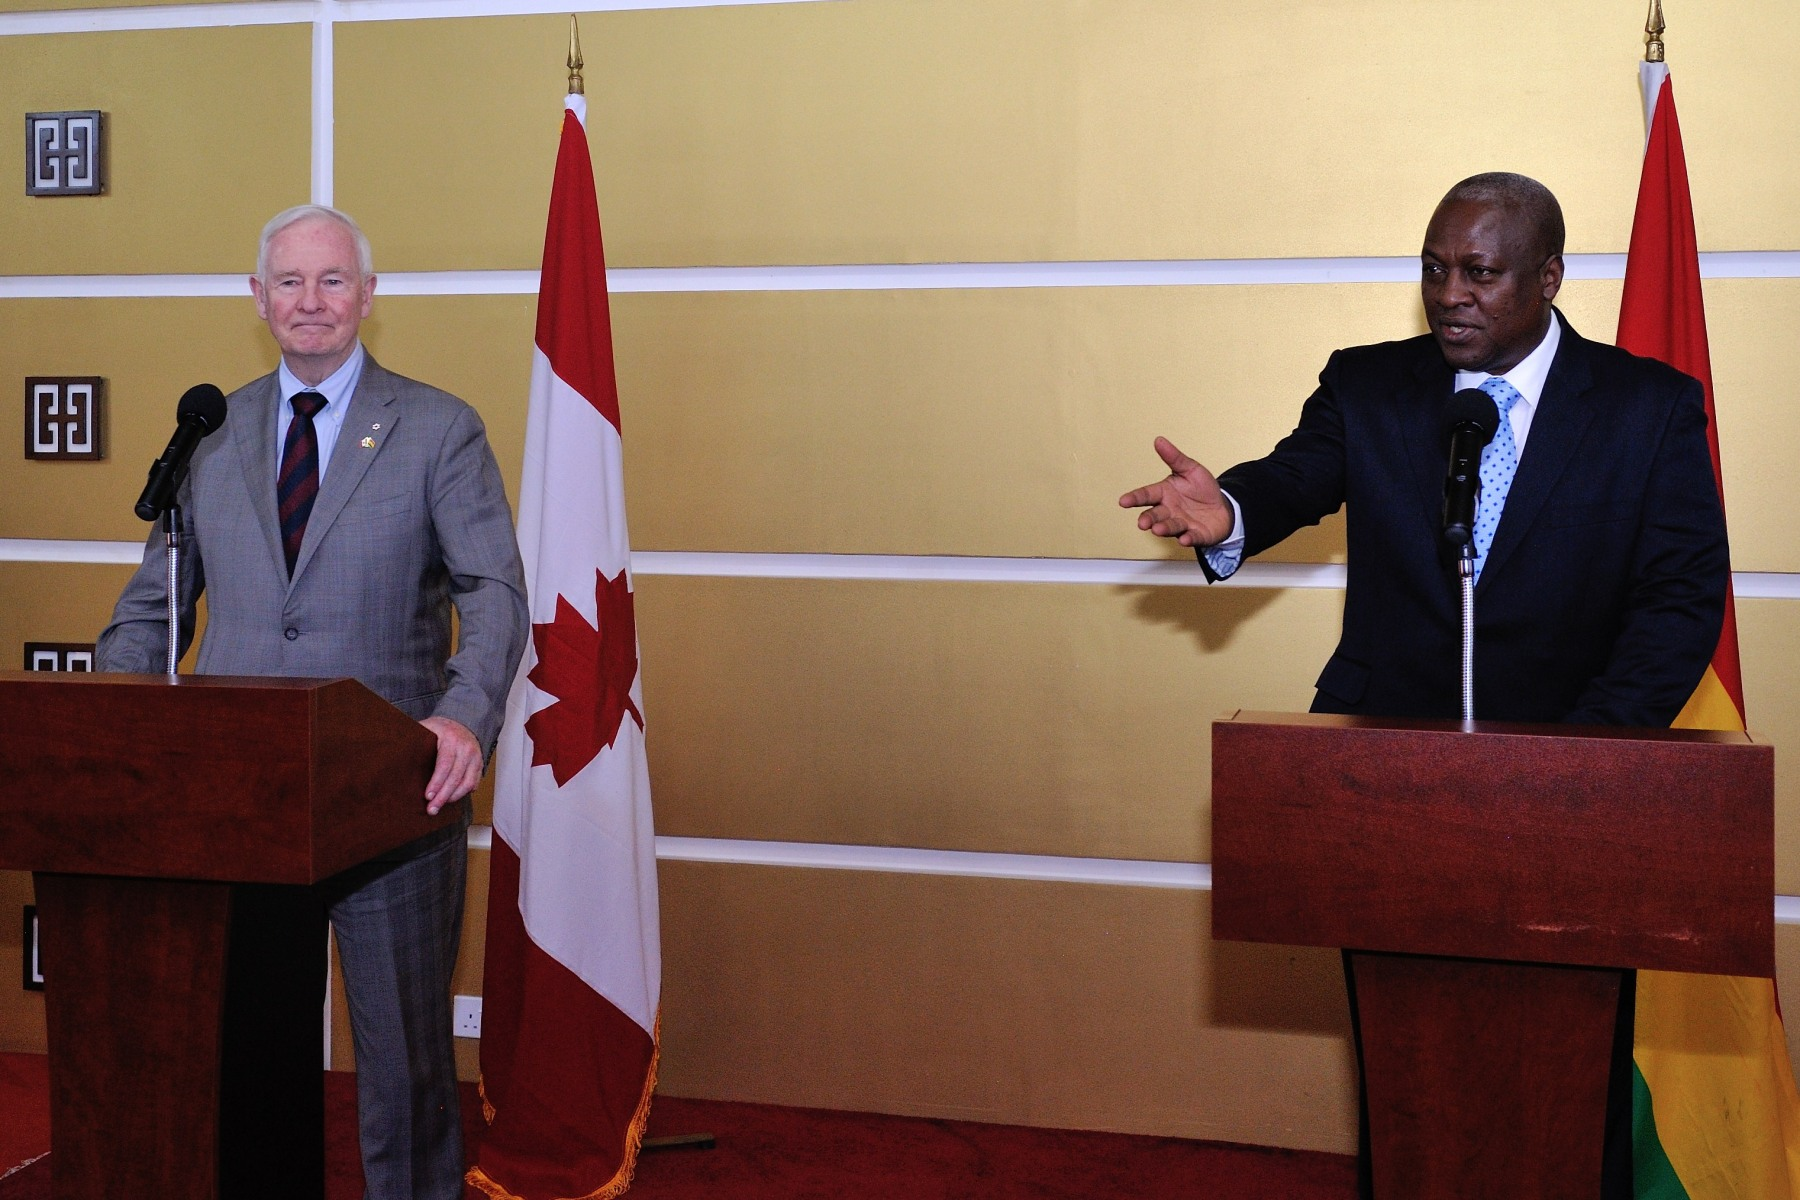 Following their meeting, the Governor General and the President delivered a joint statement and answered questions from members of the media.